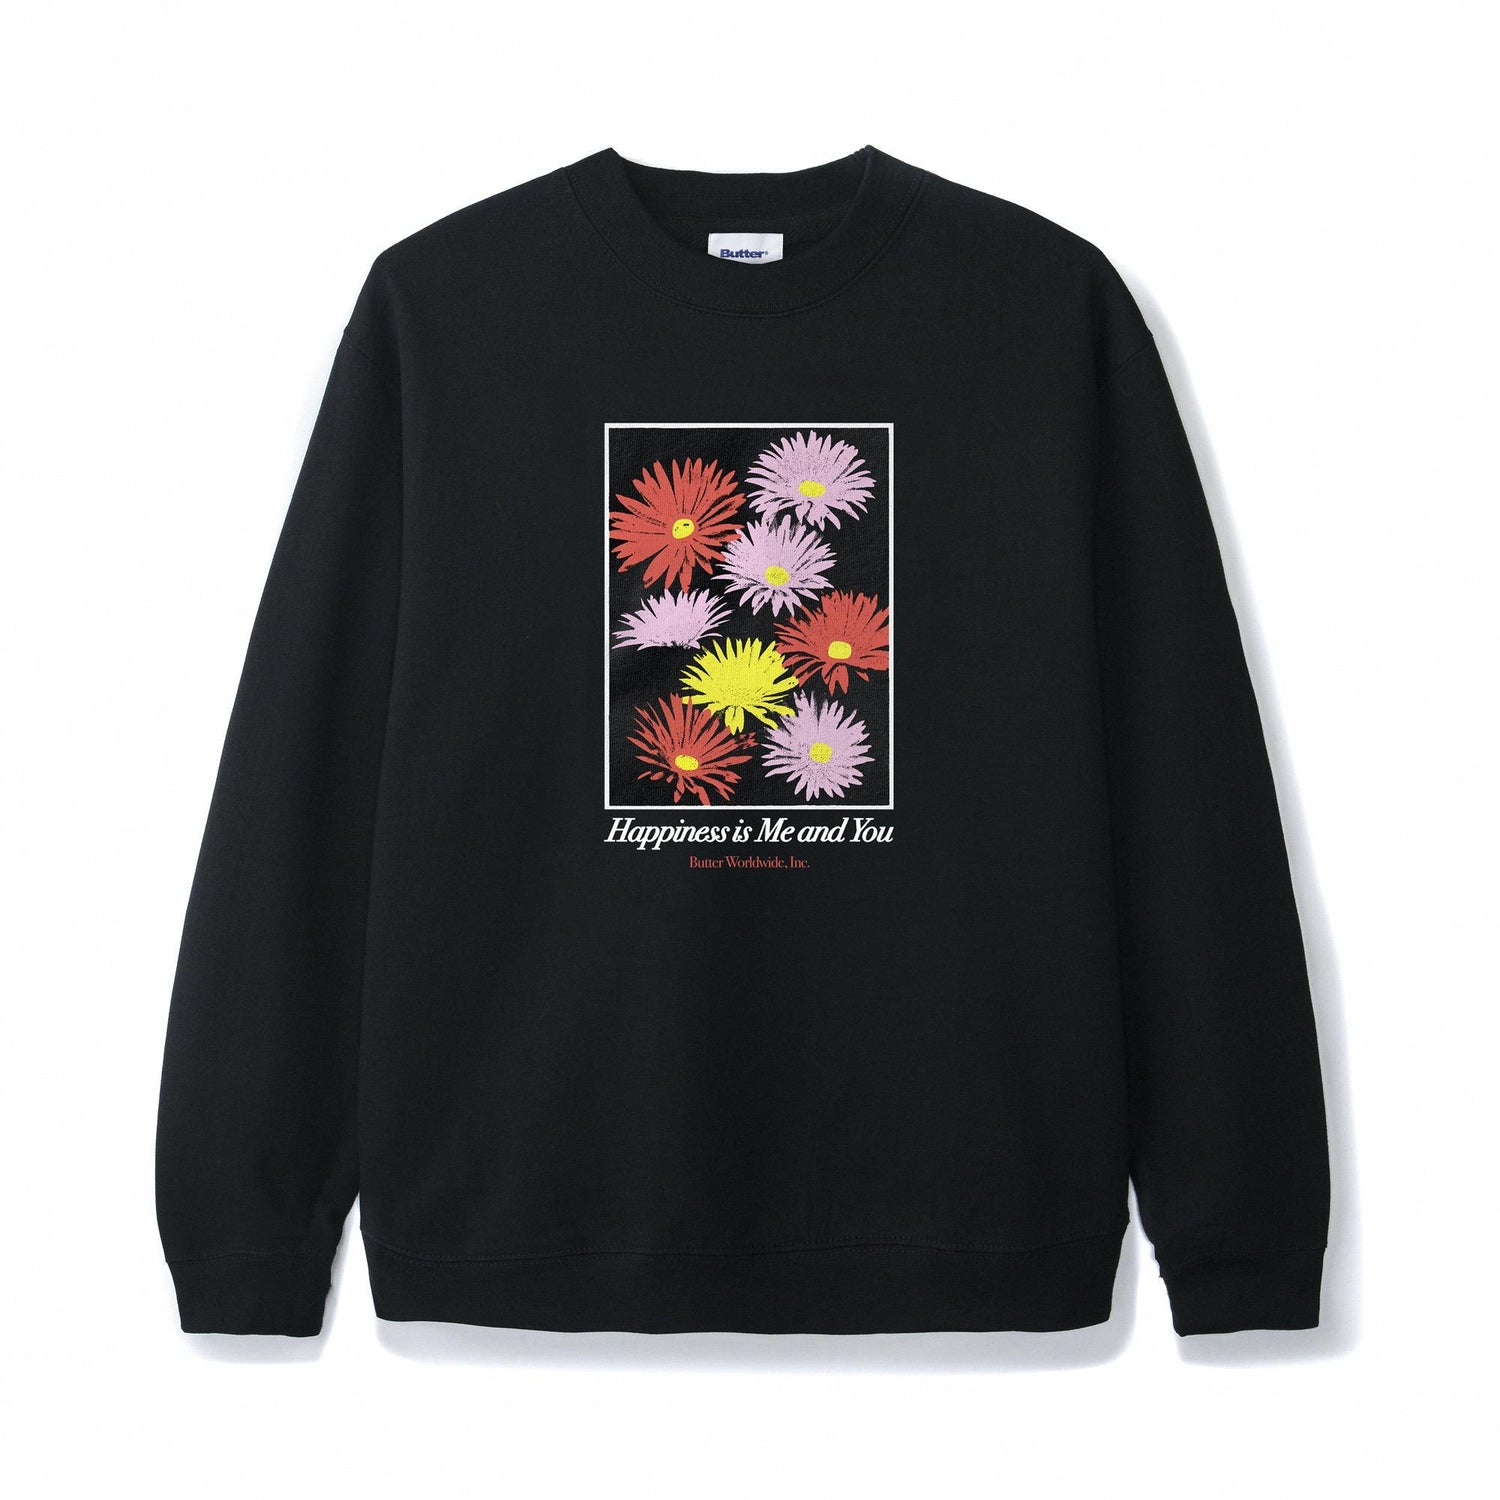 Happiness Crewneck, Black